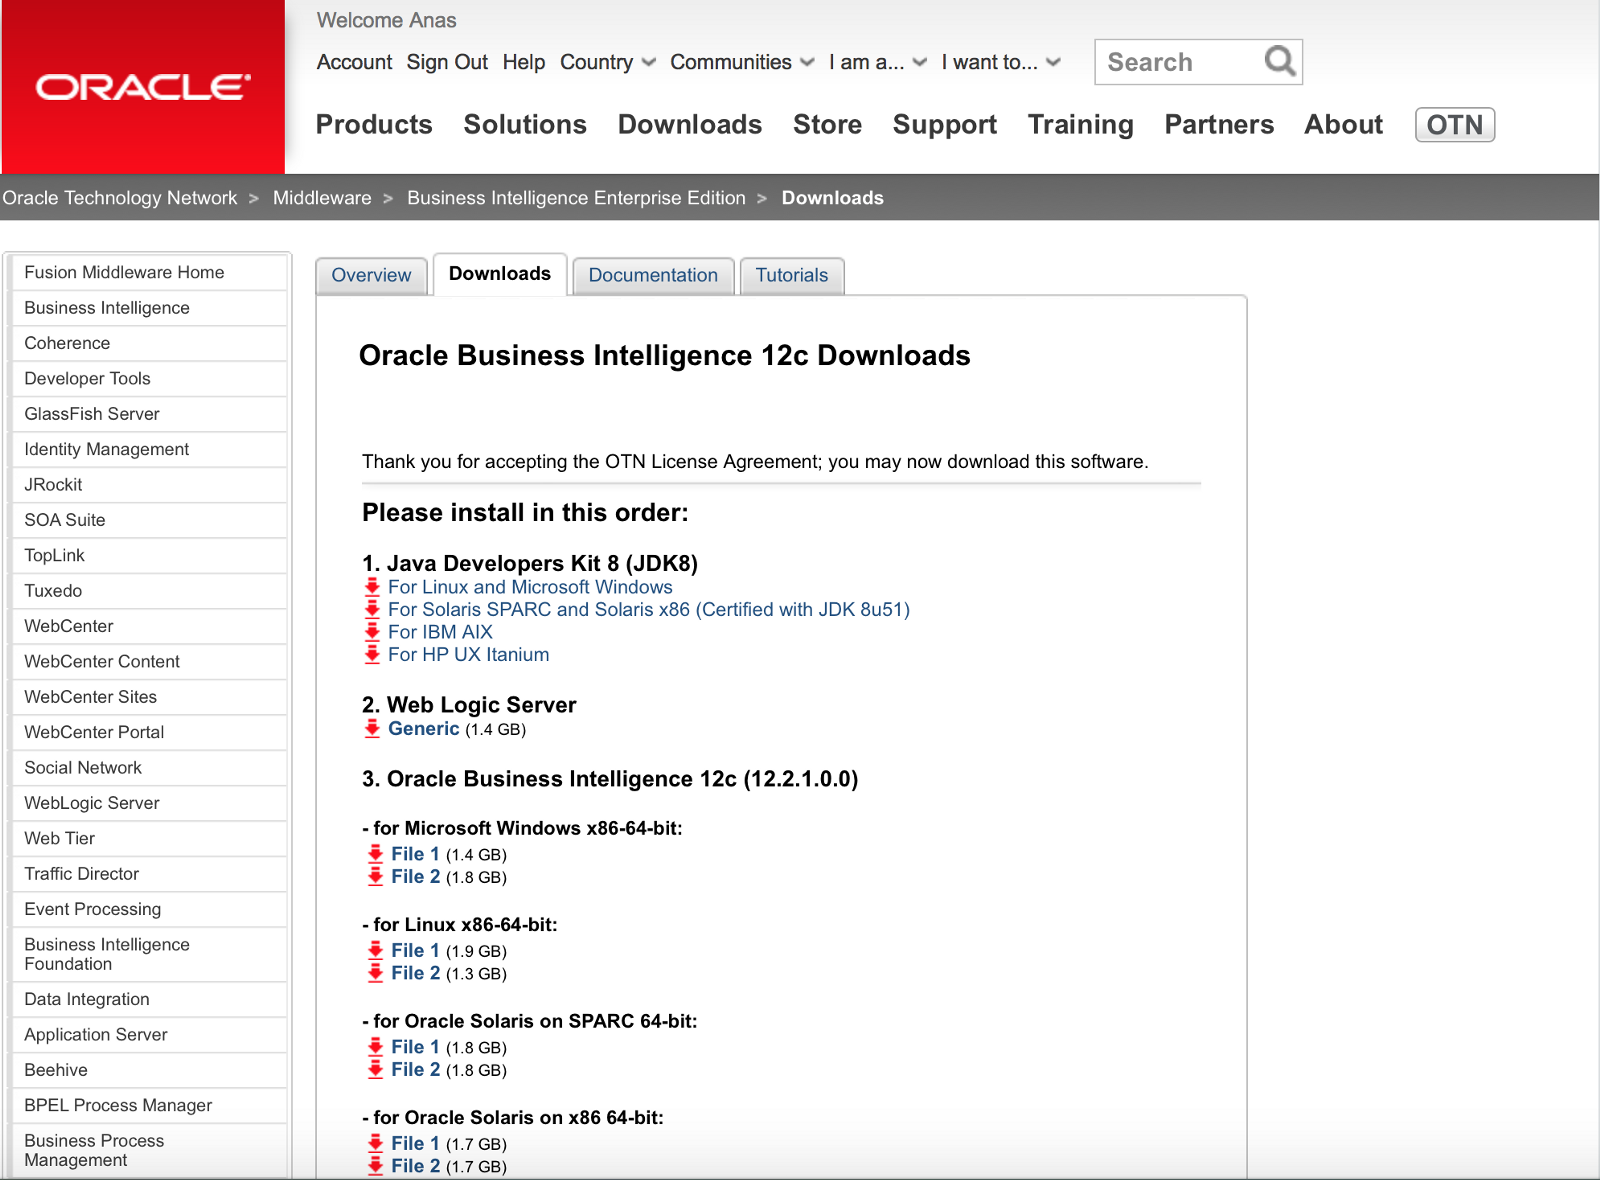 Oracle business intelligence 12c obiee 12c is finally here all also obiee 12c will support fusion middleware 12c weblogic server 12c and enterprise manager 12c baditri Images